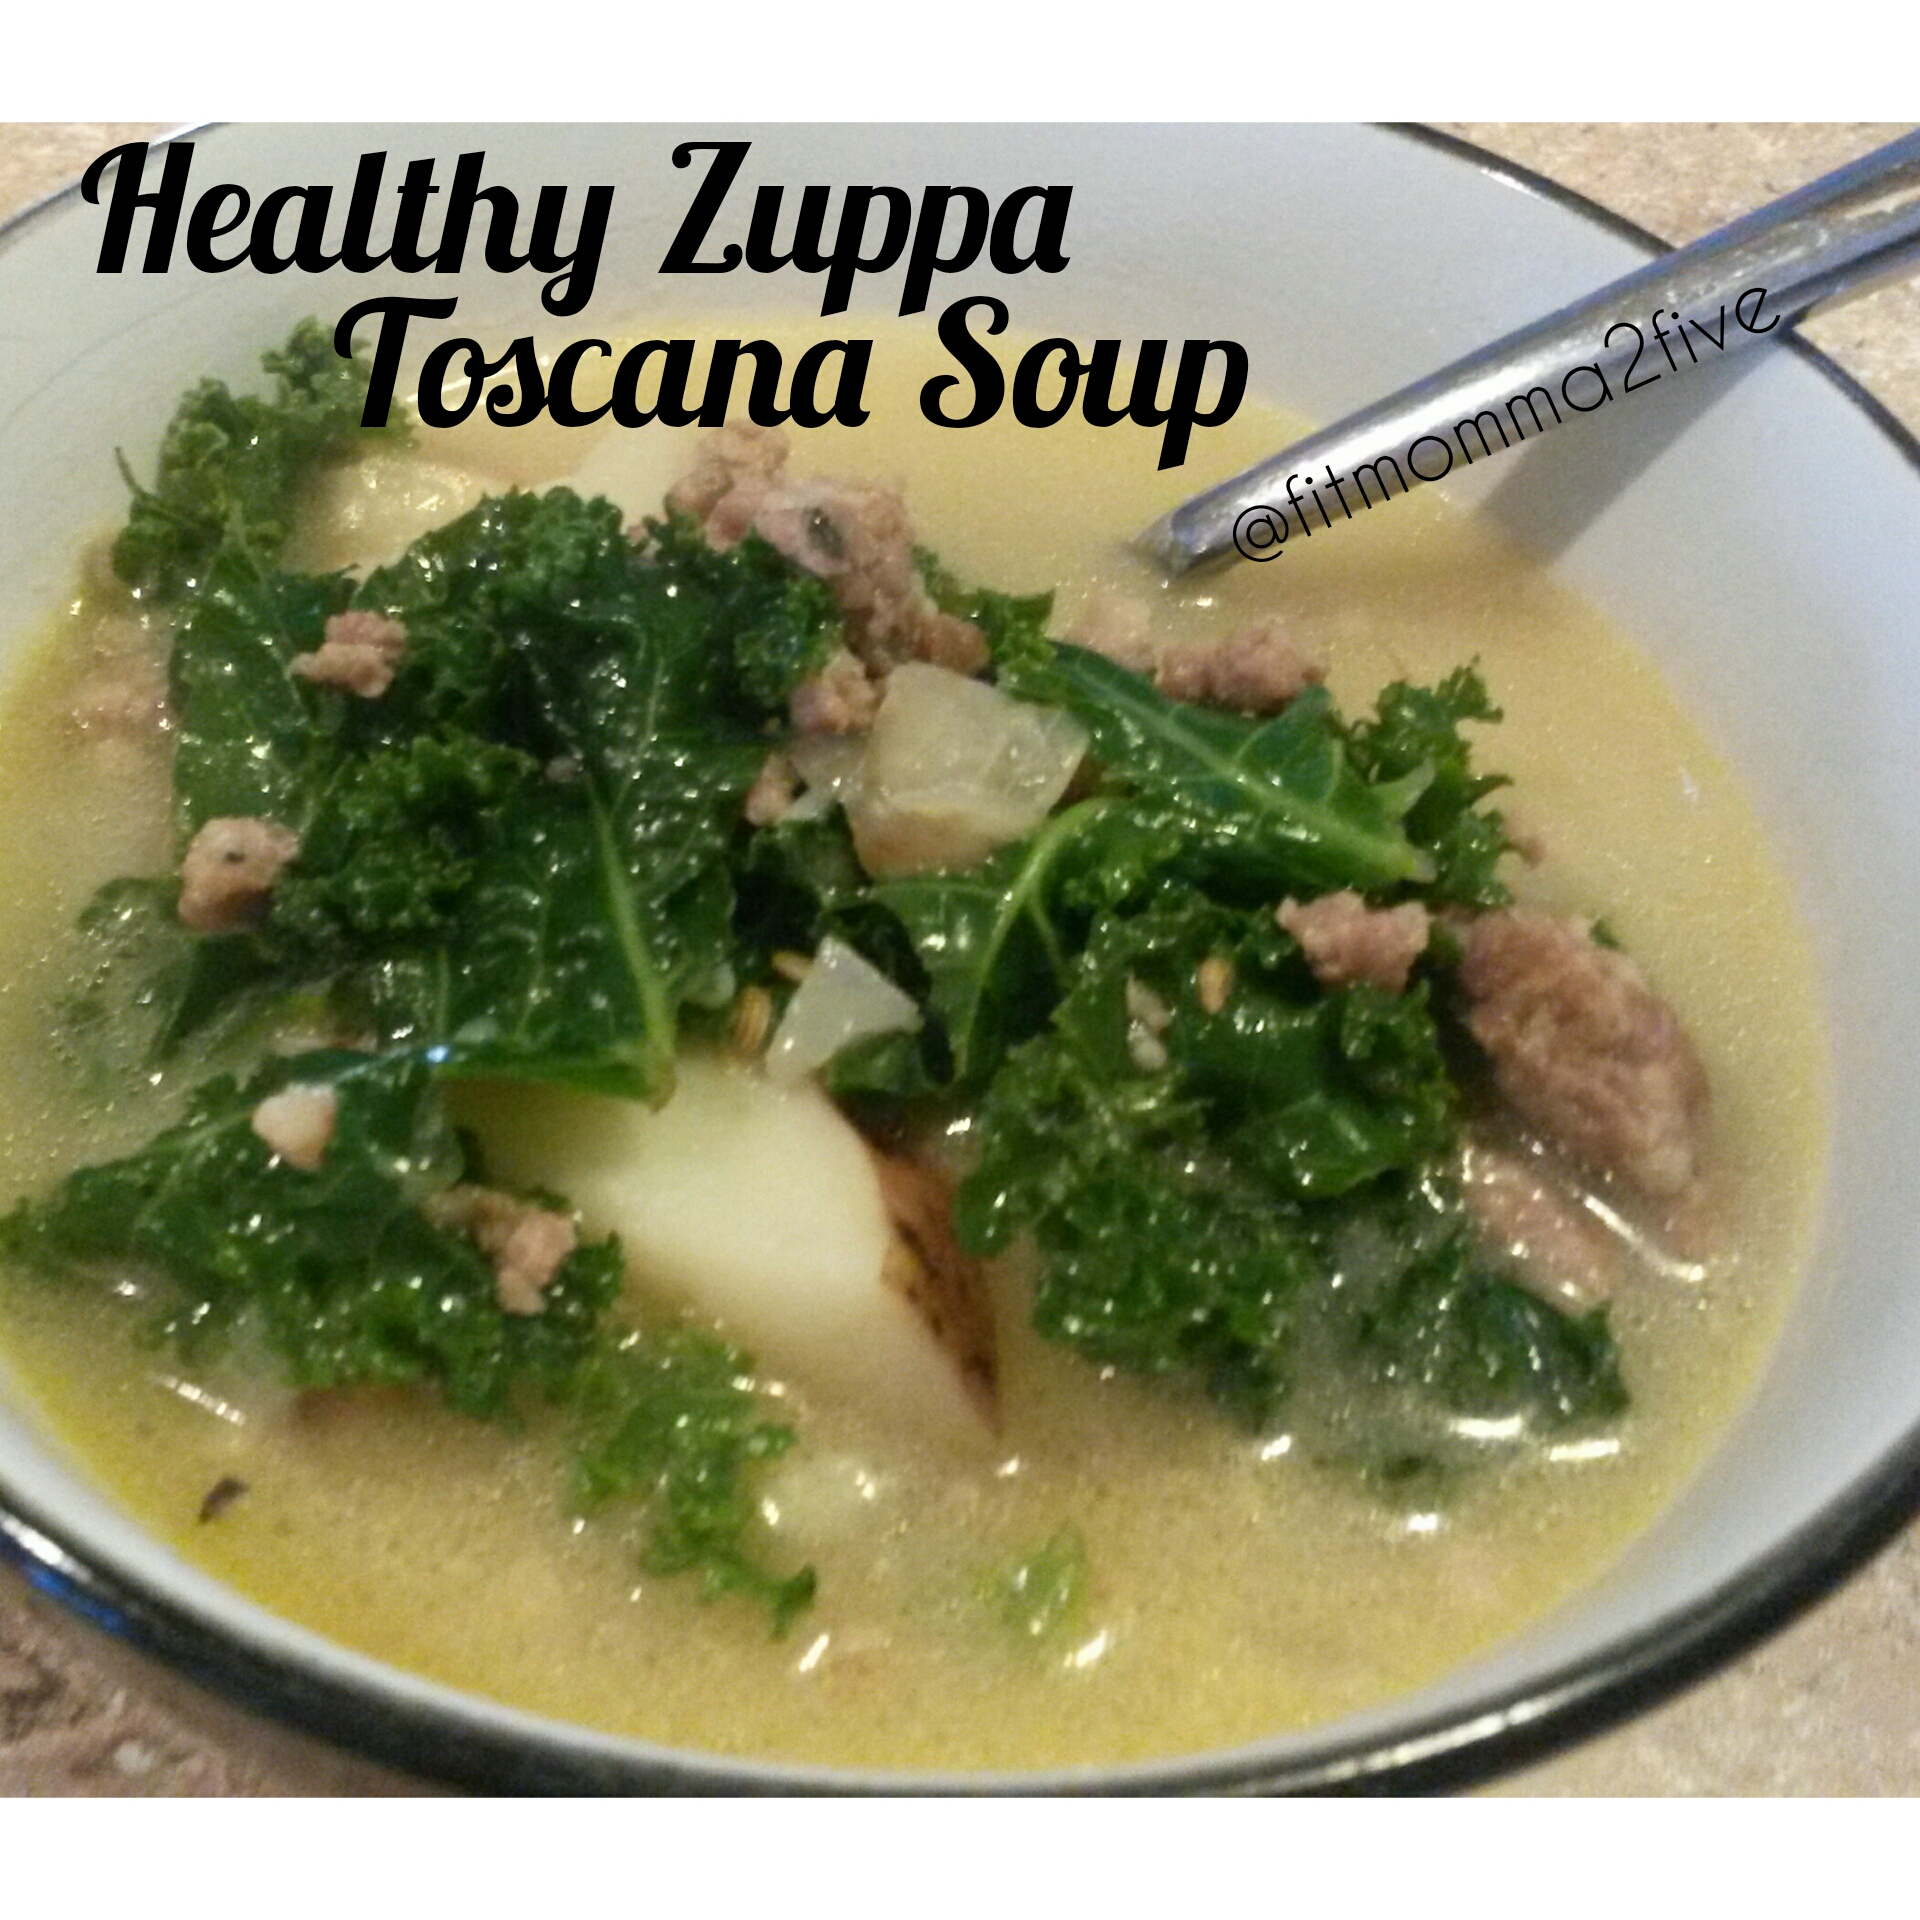 Healthy zuppa toscana soup 21 day fix approved - What kind of soup does olive garden have ...